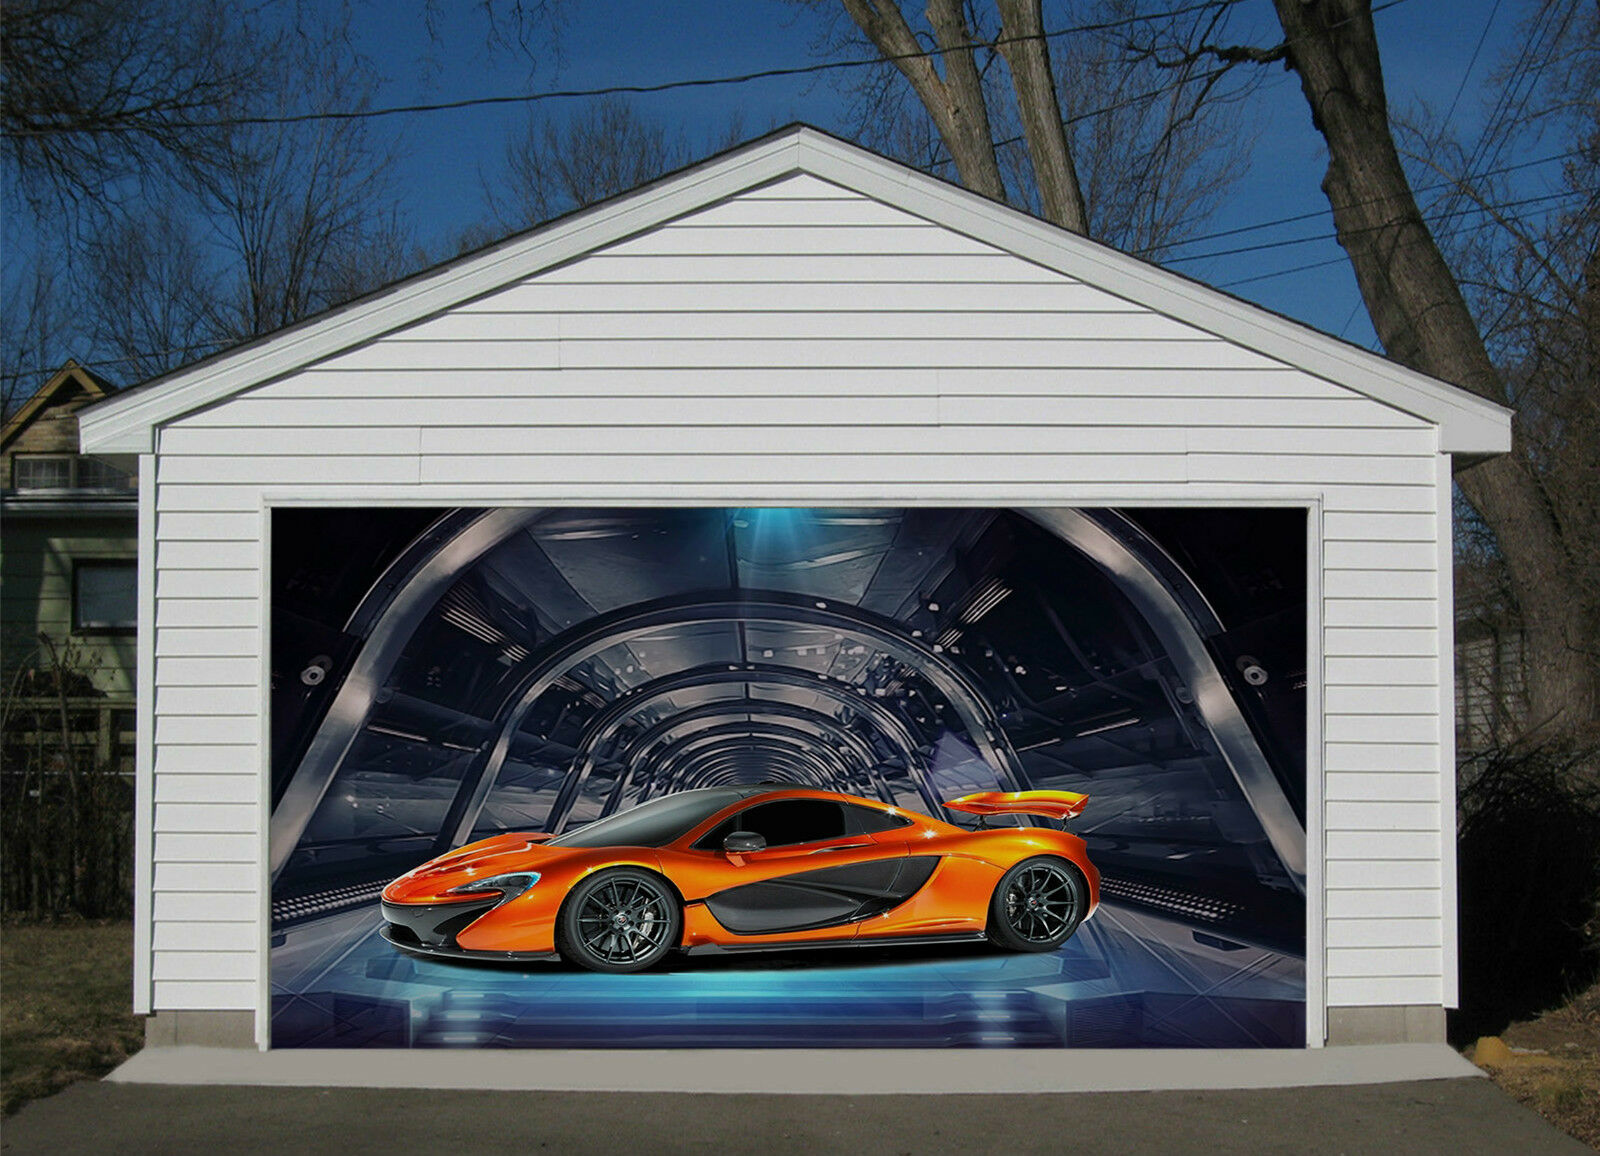 3D Auto Sportiva 4 Garage Porta Stampe Parete Decorazione Murale AJ WALLPAPER IT